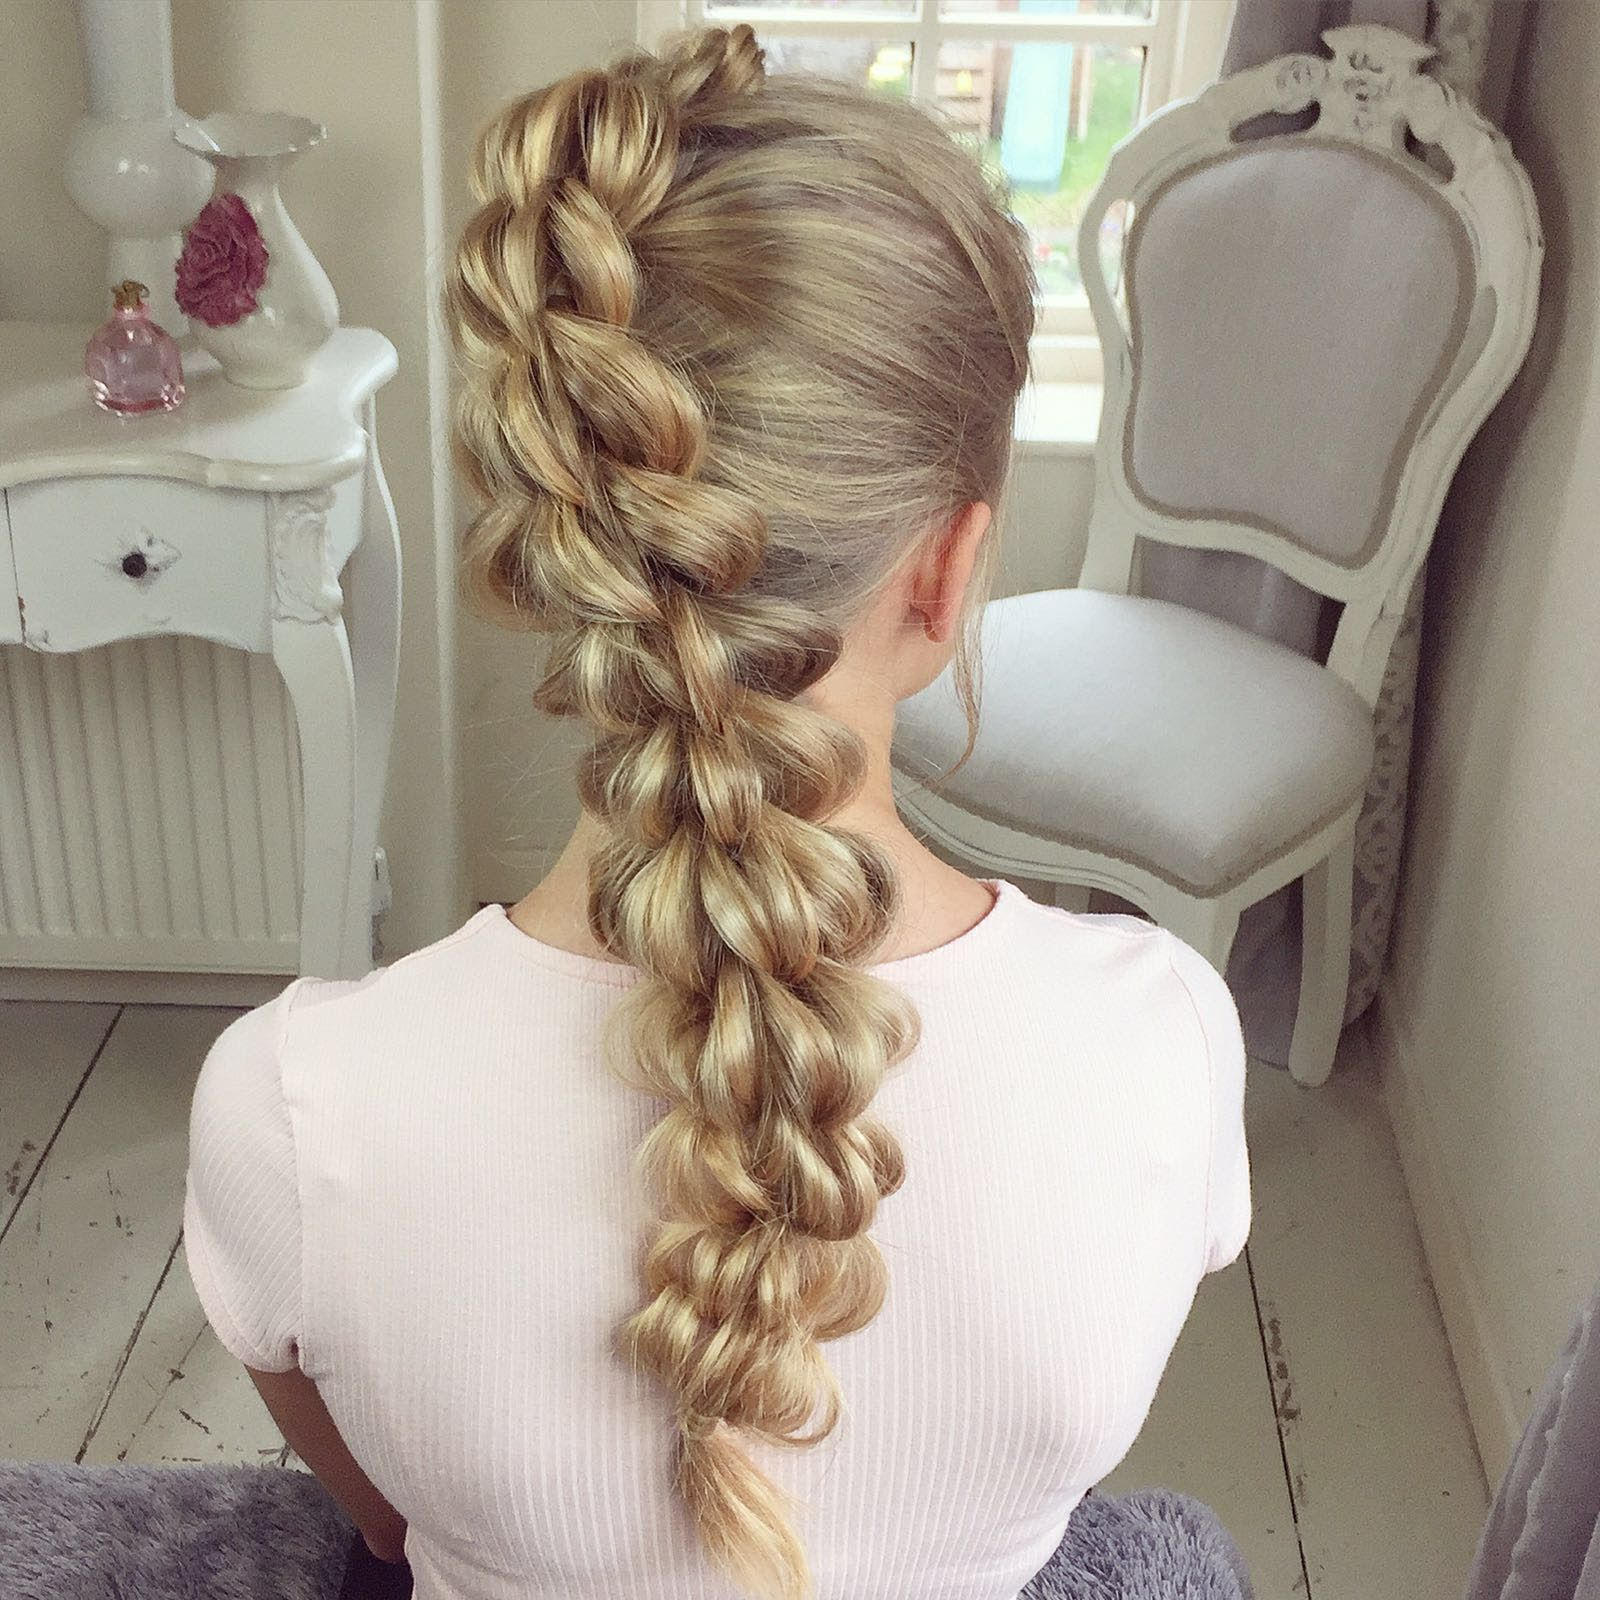 The Four Strand Pull Through Braid By SweetHearts Hair Design - Long hairstyle design pics